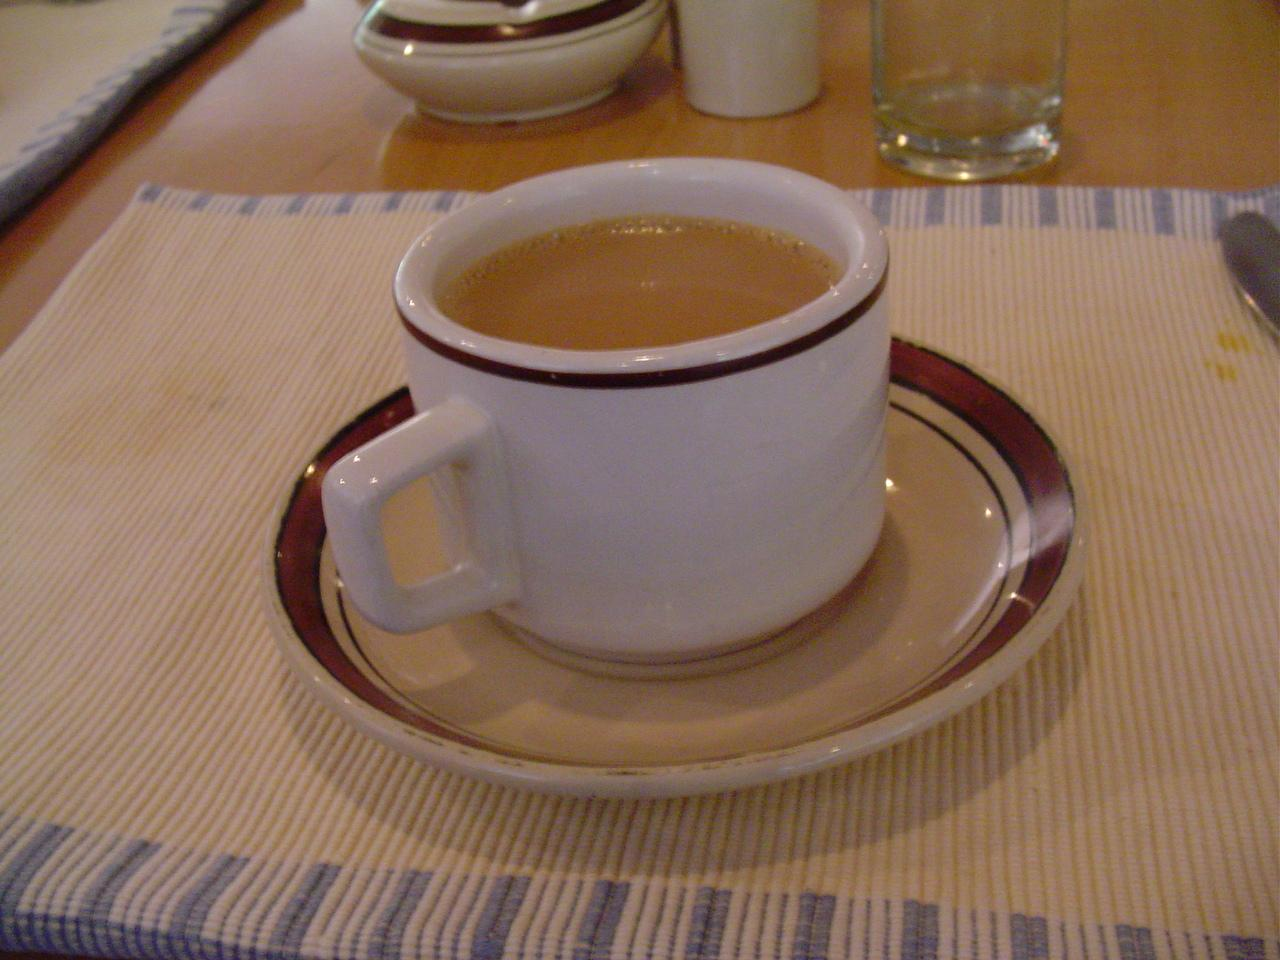 File:A cup of chai.JPG - Wikipedia, the free encyclopedia